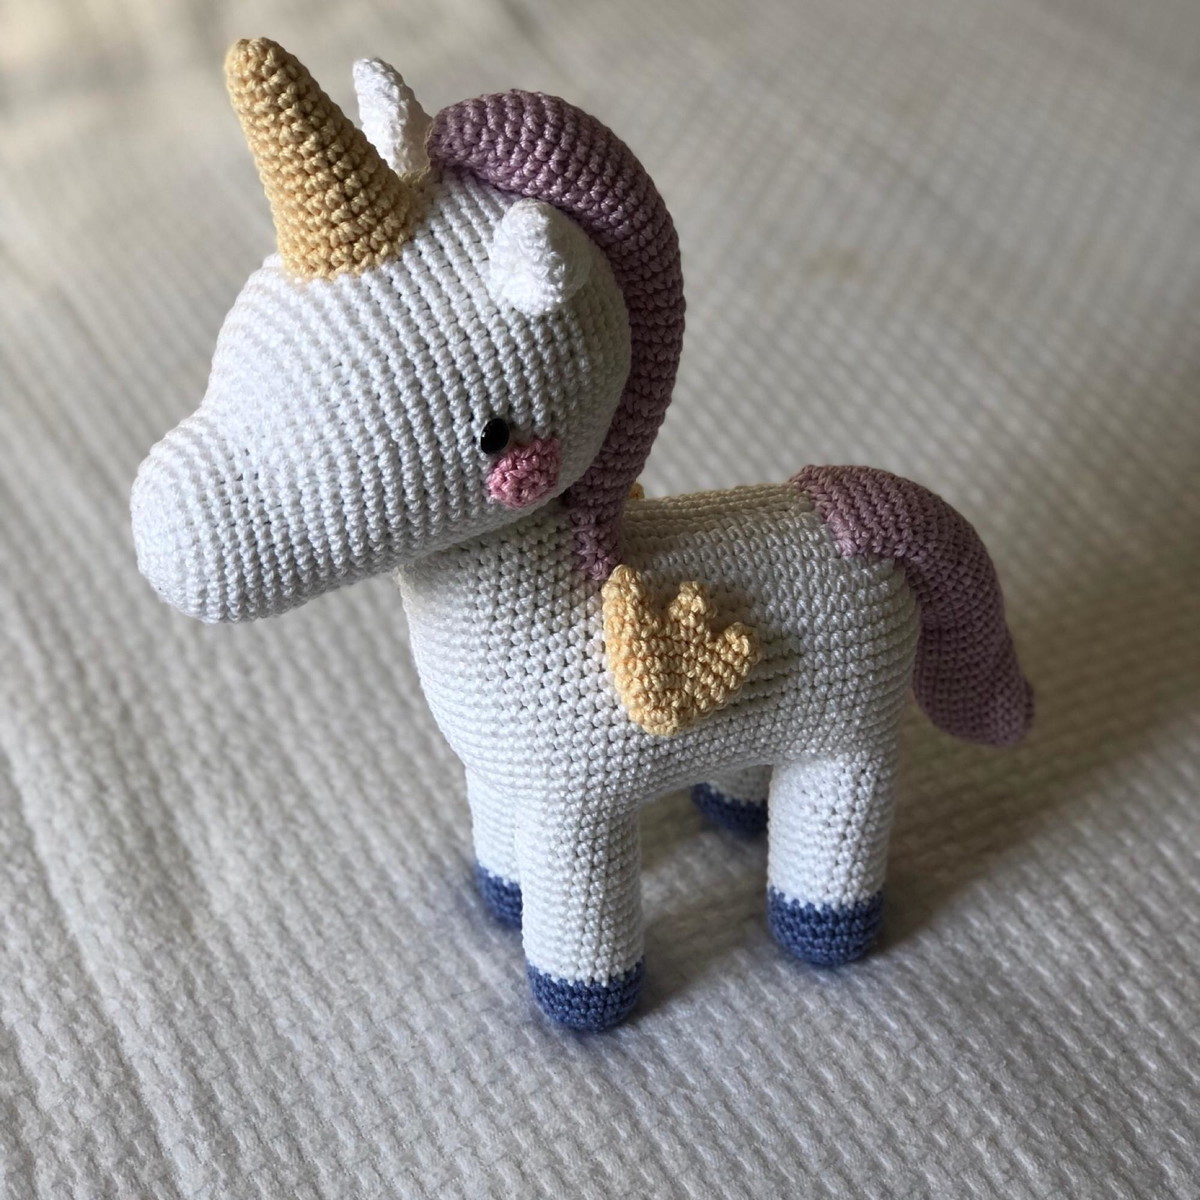 Robin Unicorn, Crochet Unicorn, Amigurumi Unicorn, Stuffed Toy ... | 1200x1200